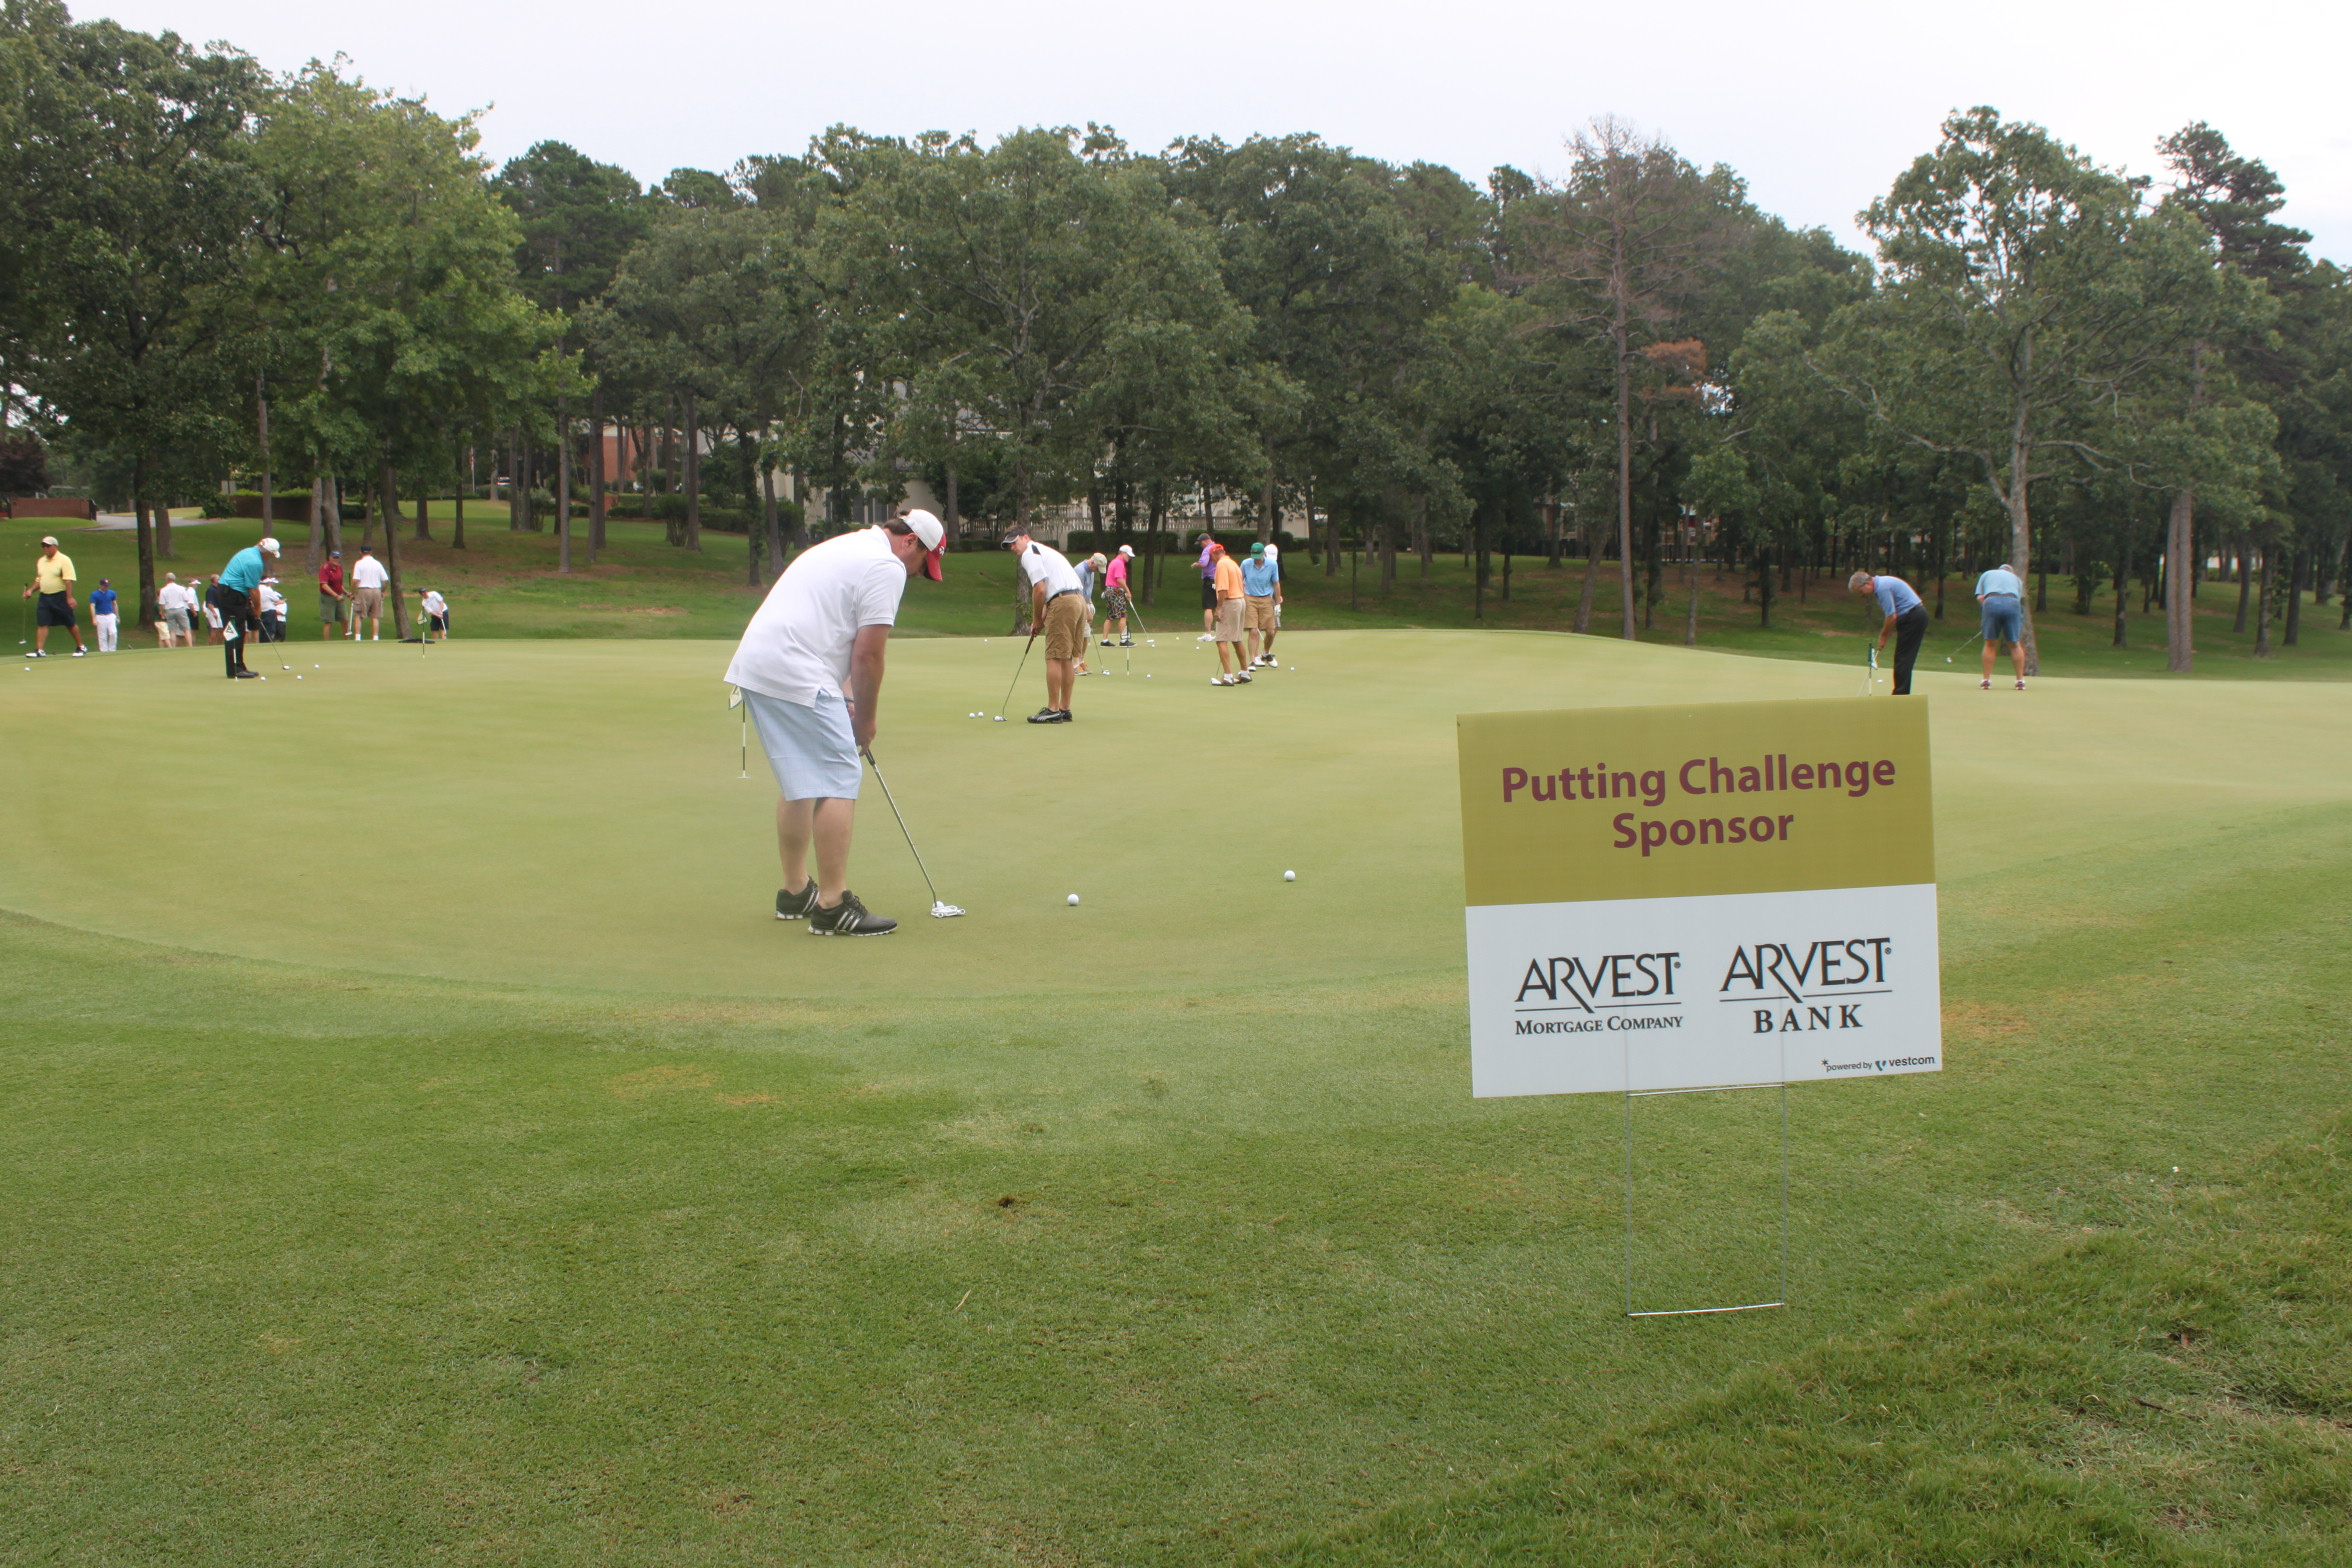 UALR College of Business second annual golf tourney